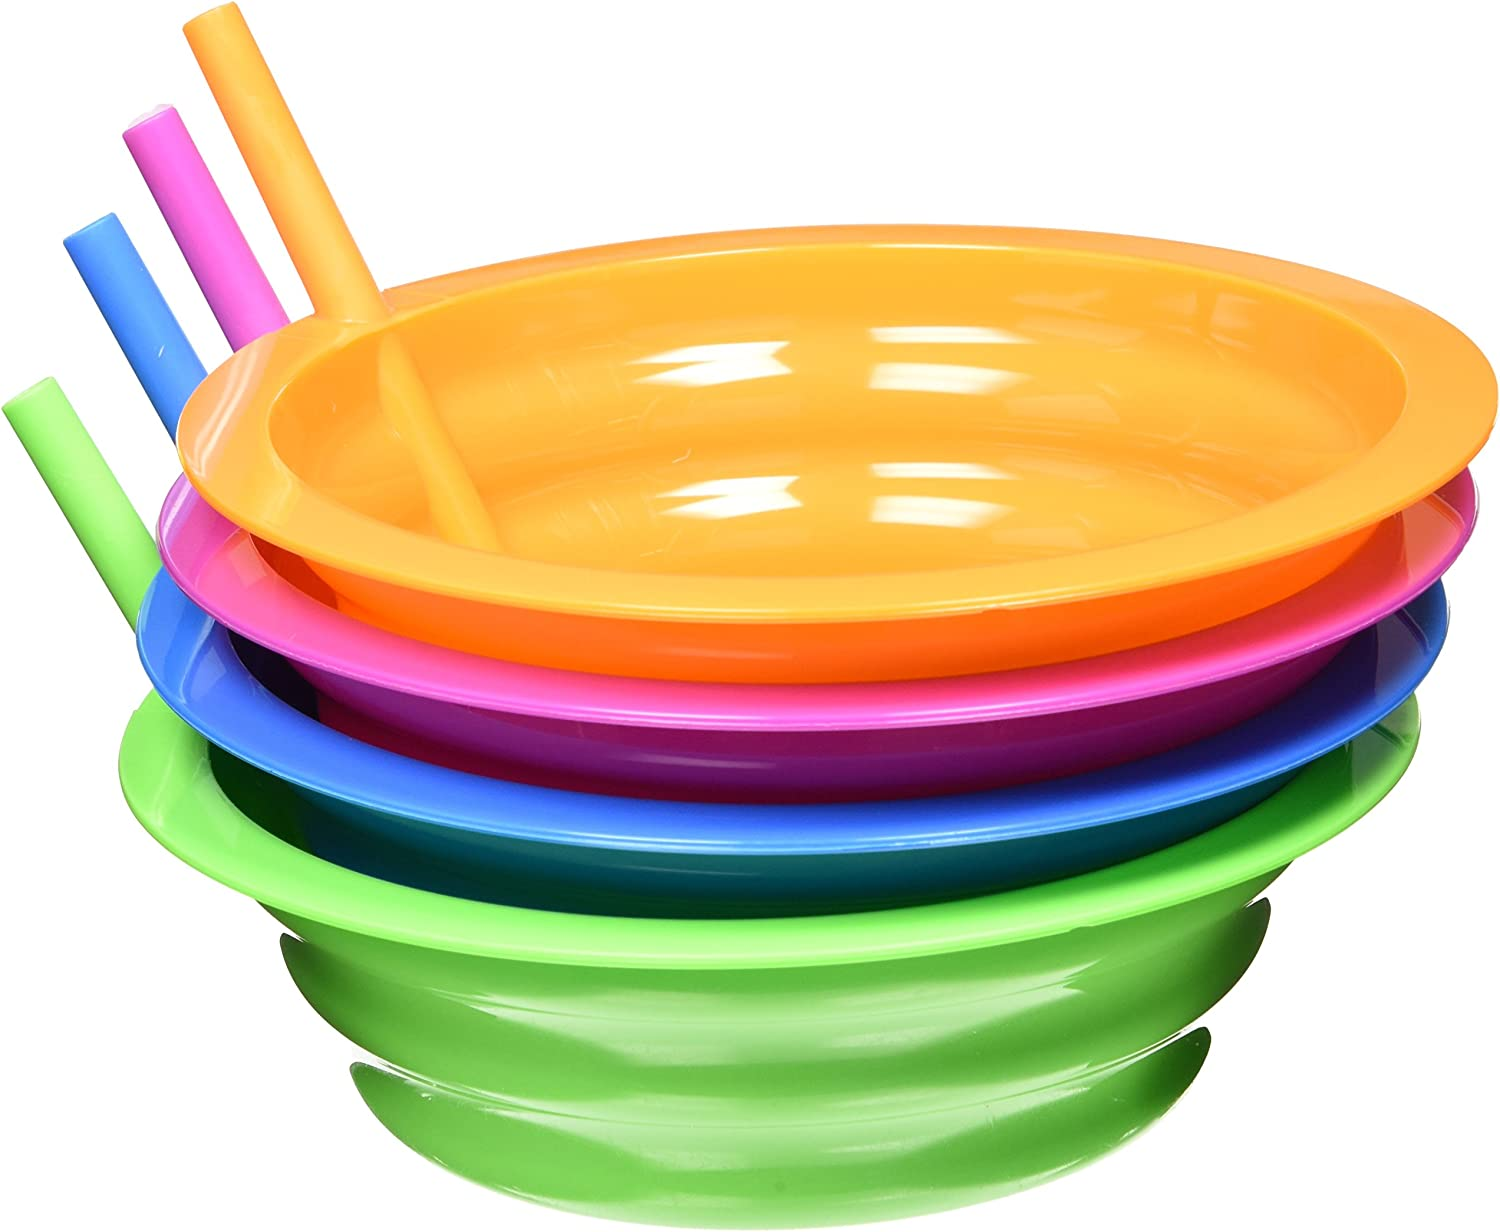 | Arrow Plastic Sip-A-Bowl 22 oz, Assorted Colors - Pack of 4: Cereal Bowls